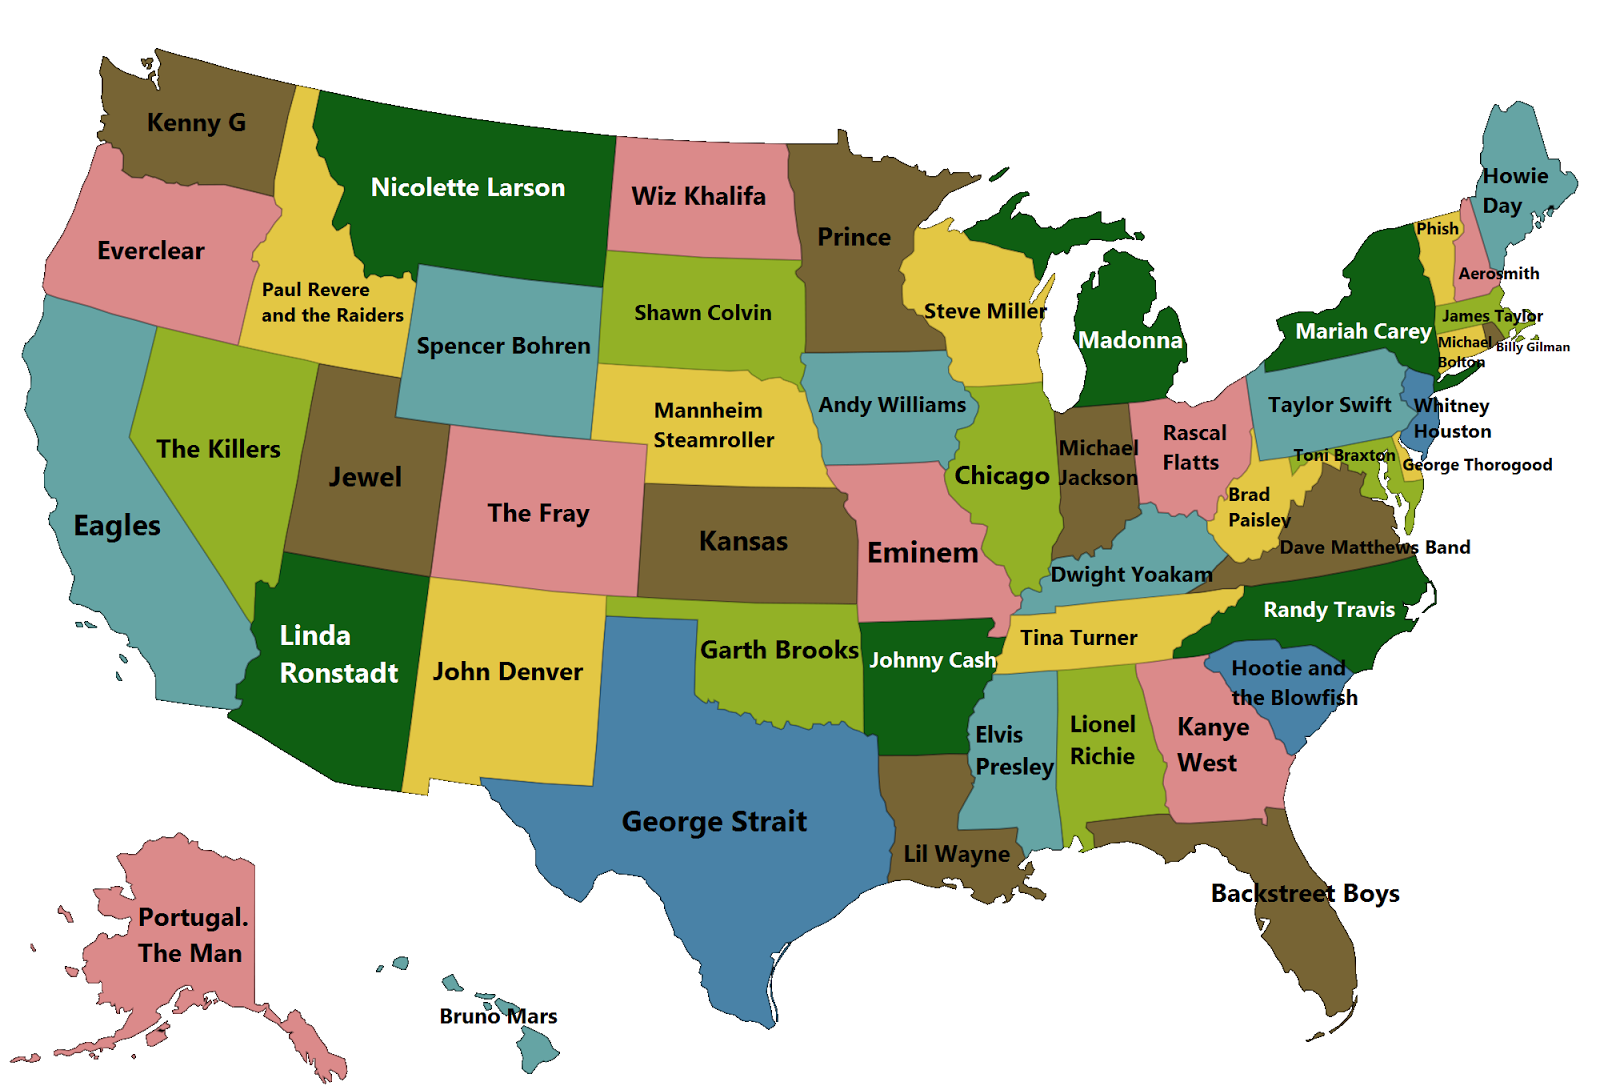 Best selling music artists in each U.S. state